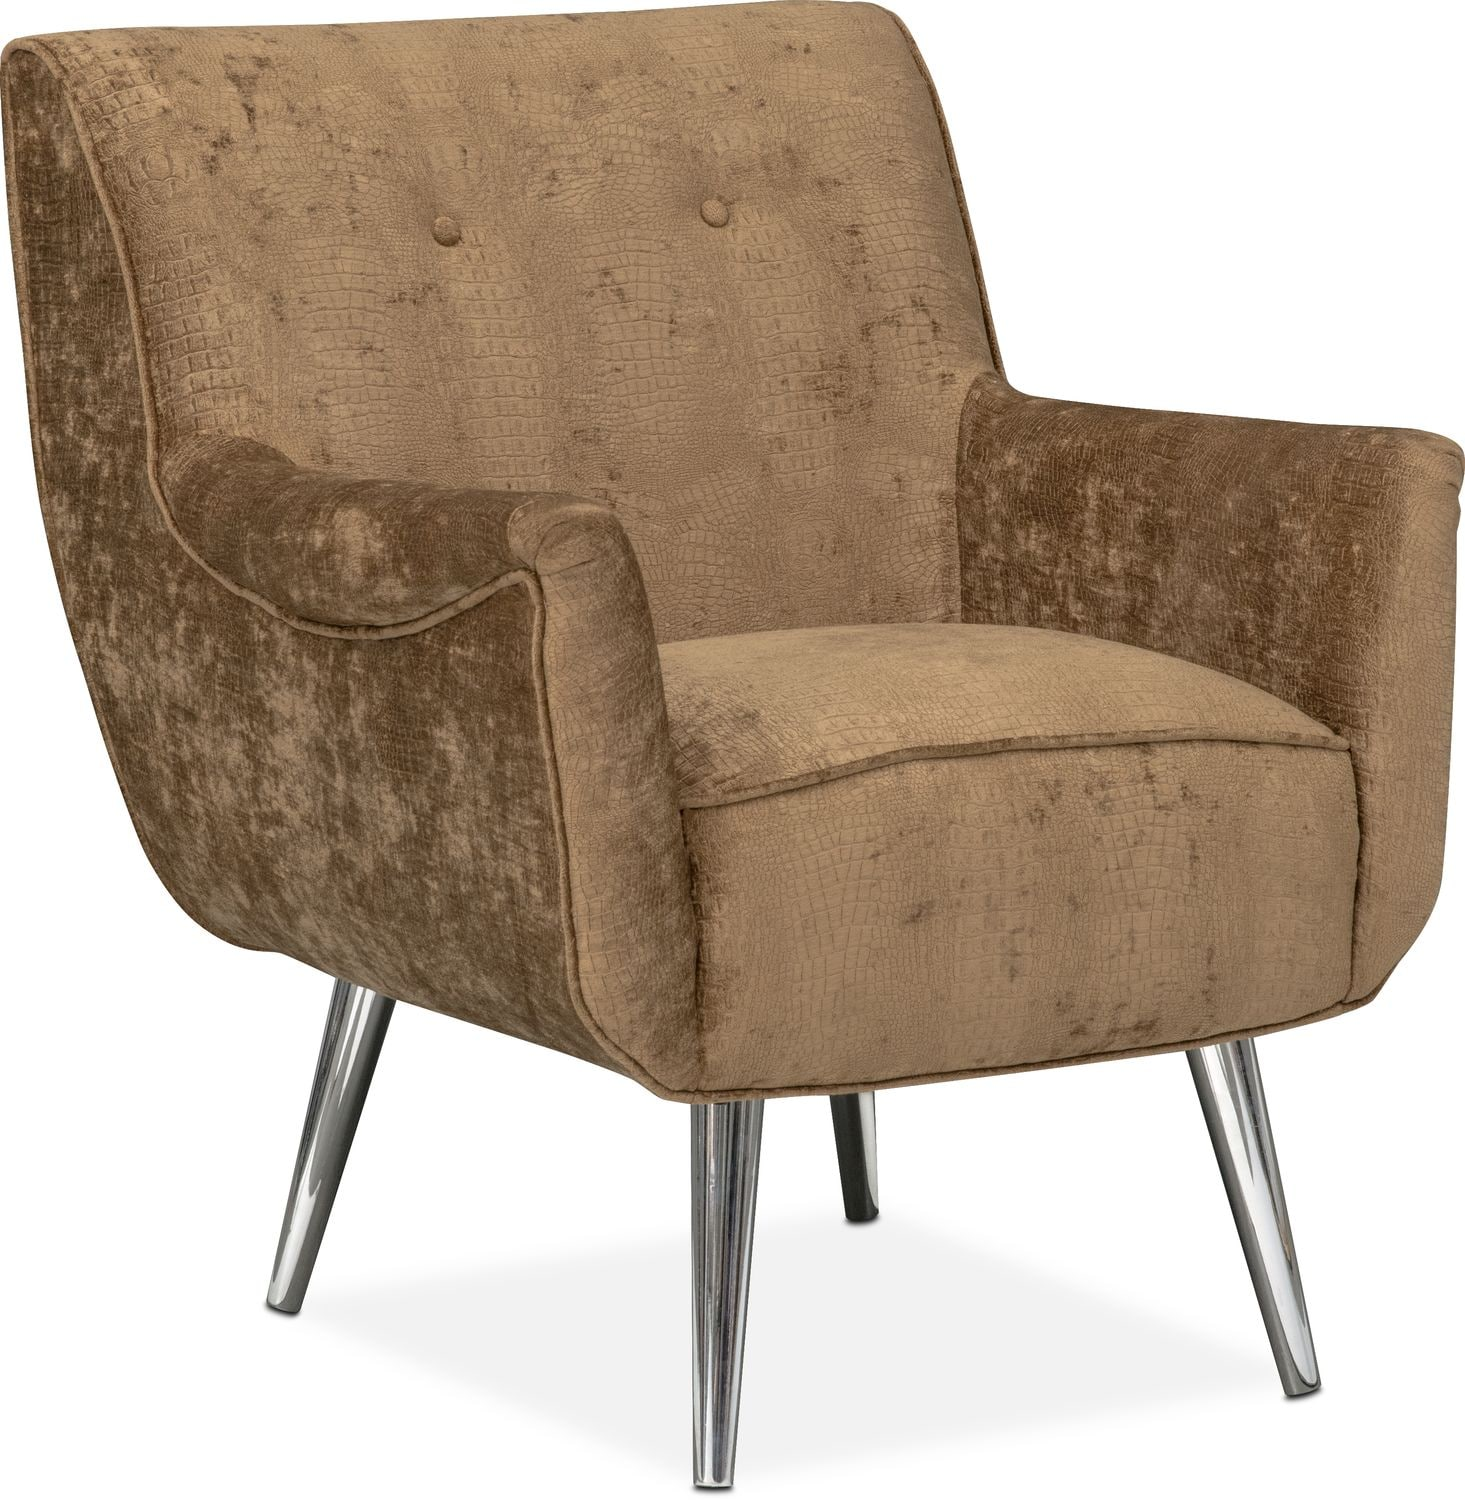 Moda Accent Chair - Caramel  sc 1 st  American Signature Furniture : chaises furniture - Sectionals, Sofas & Couches